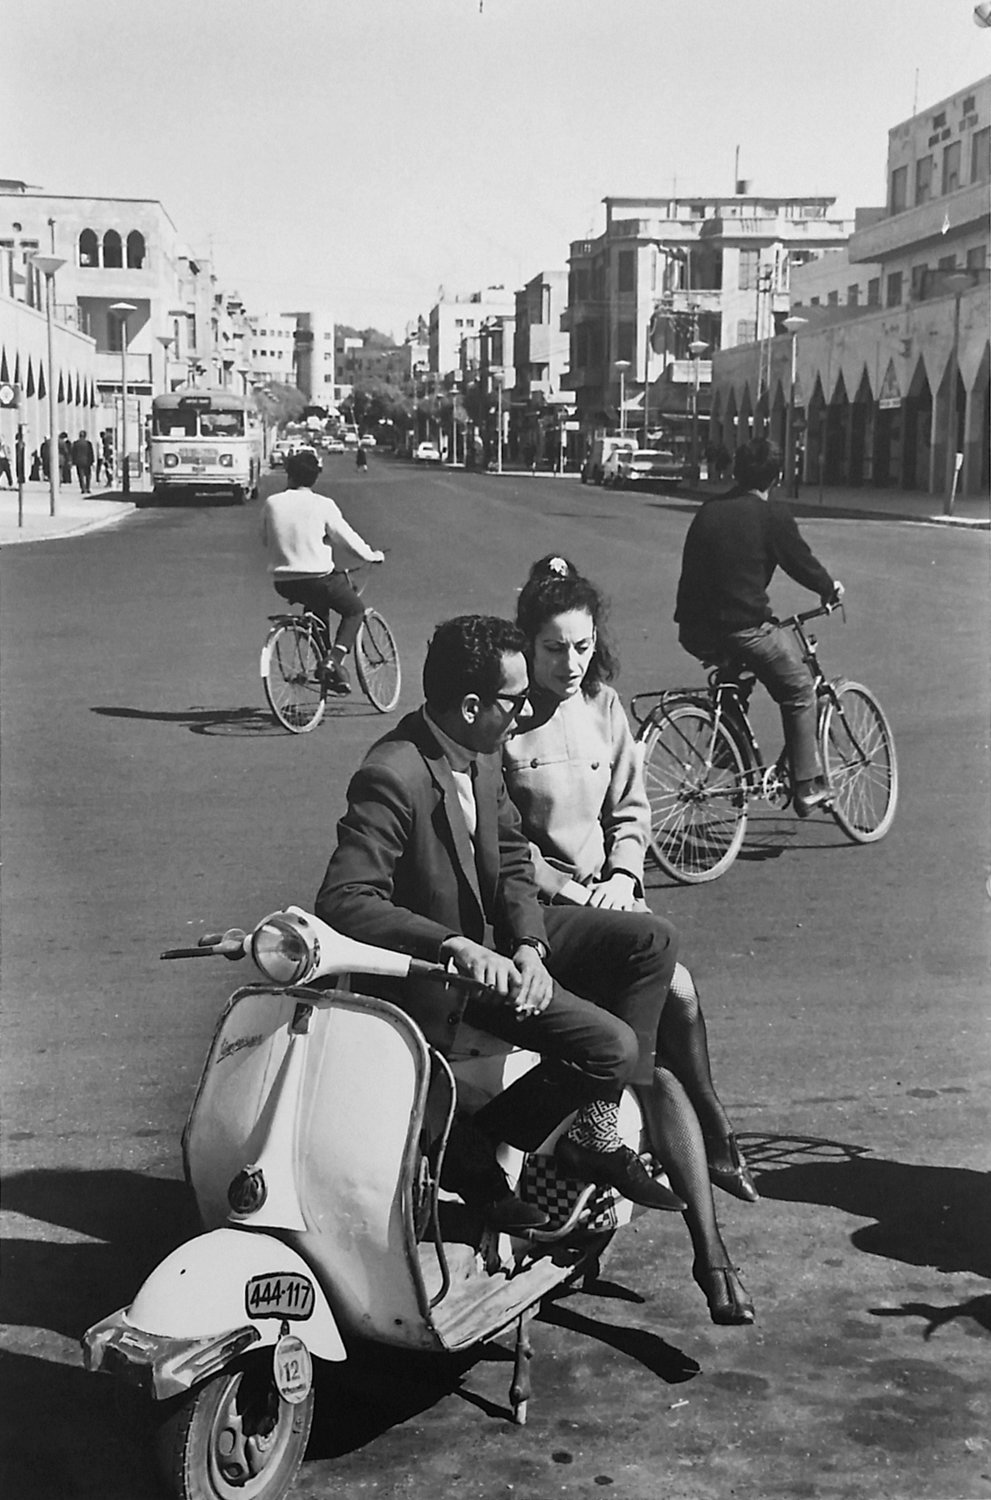 Leonard Freed photographed a couple on a scooter in Tel Aviv in 1968.